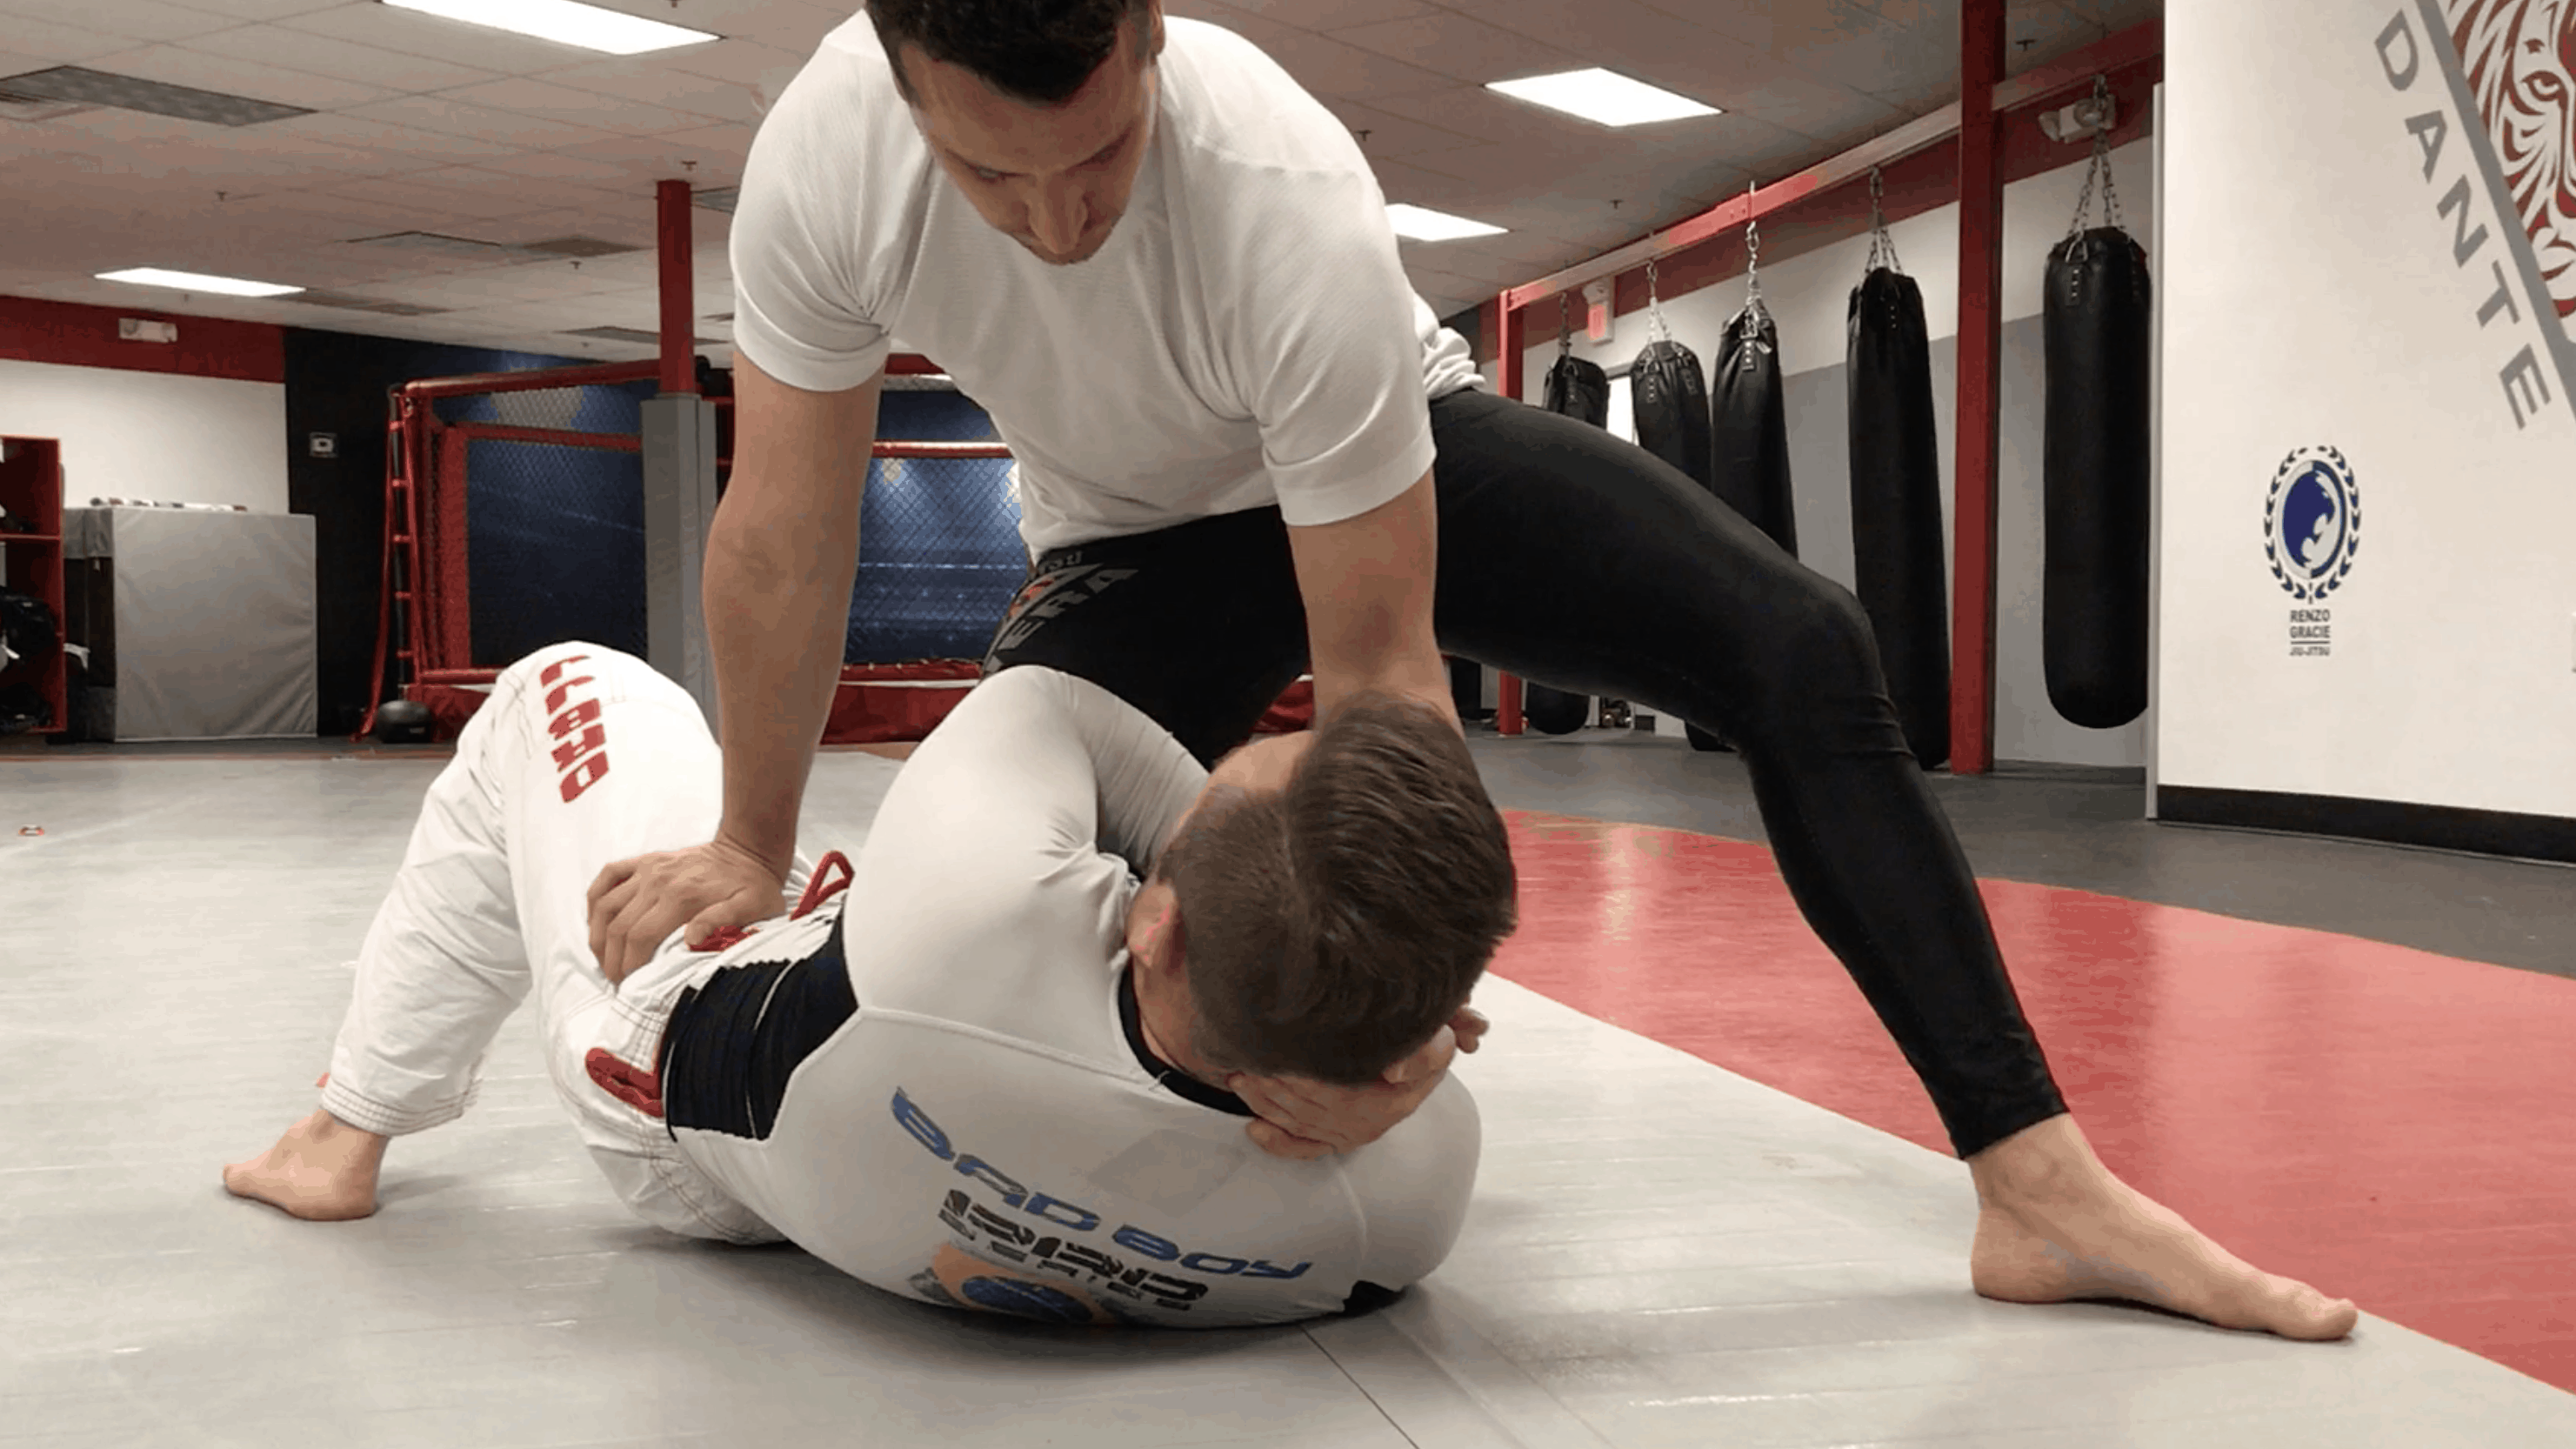 [VIDEO] Easiest Knee on Belly Escape & Defense